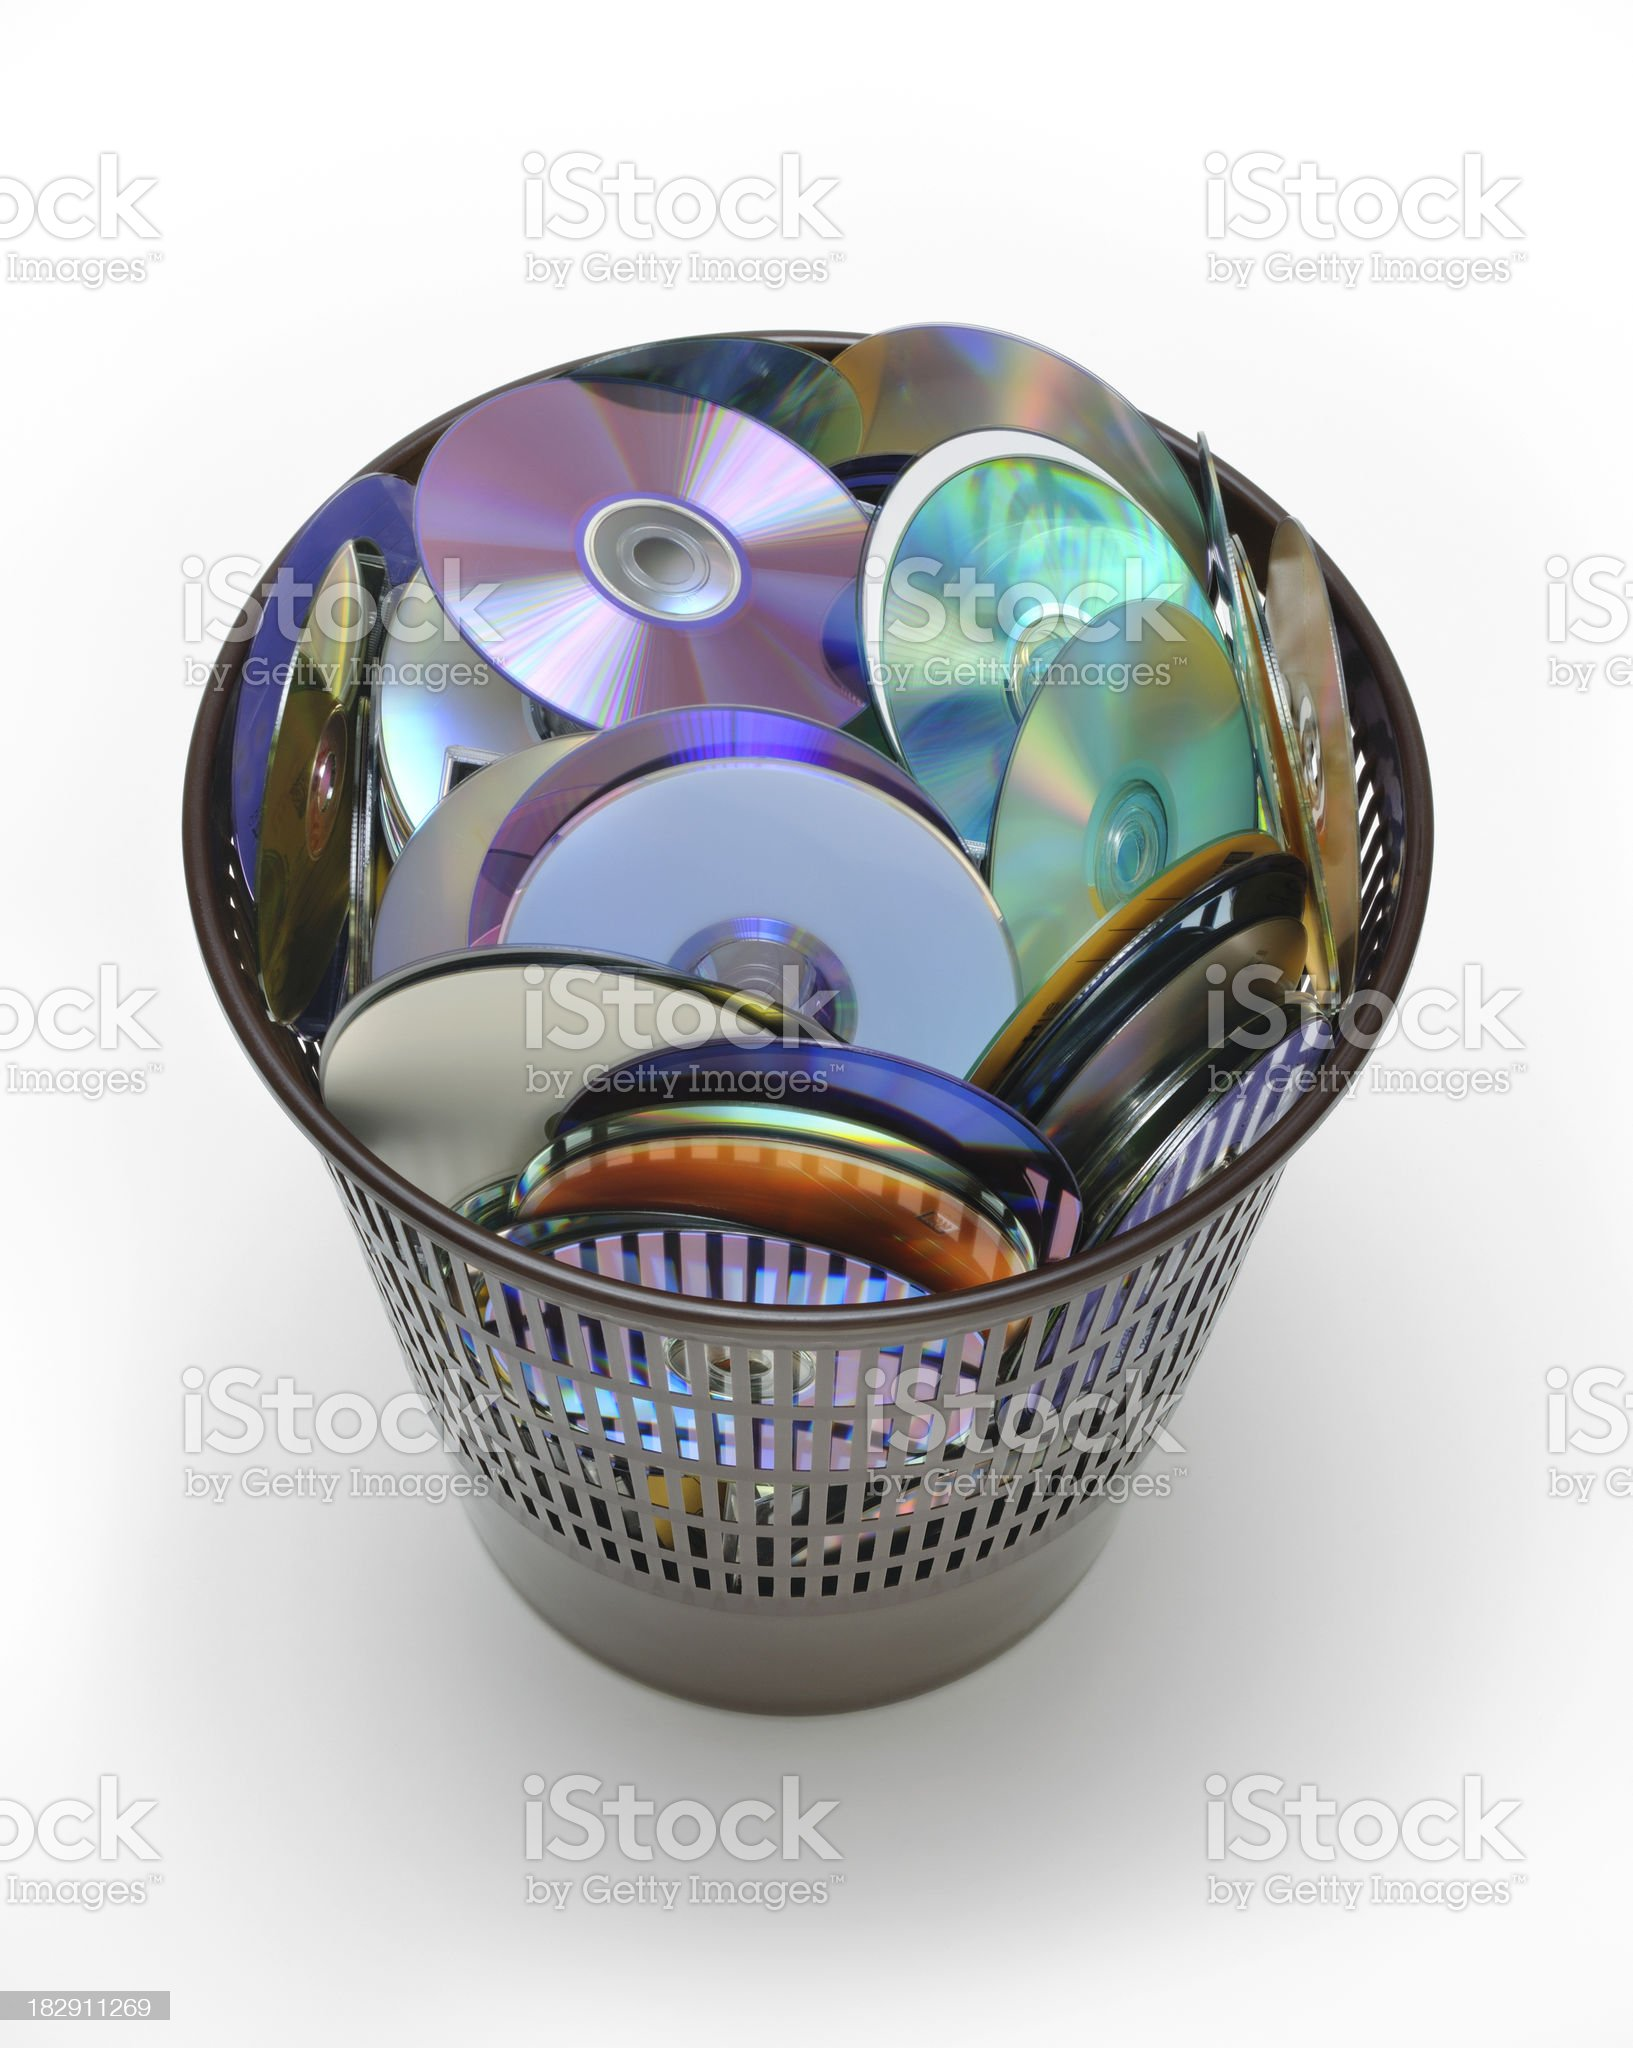 Many cd and dvd inside a basket on white background royalty-free stock photo